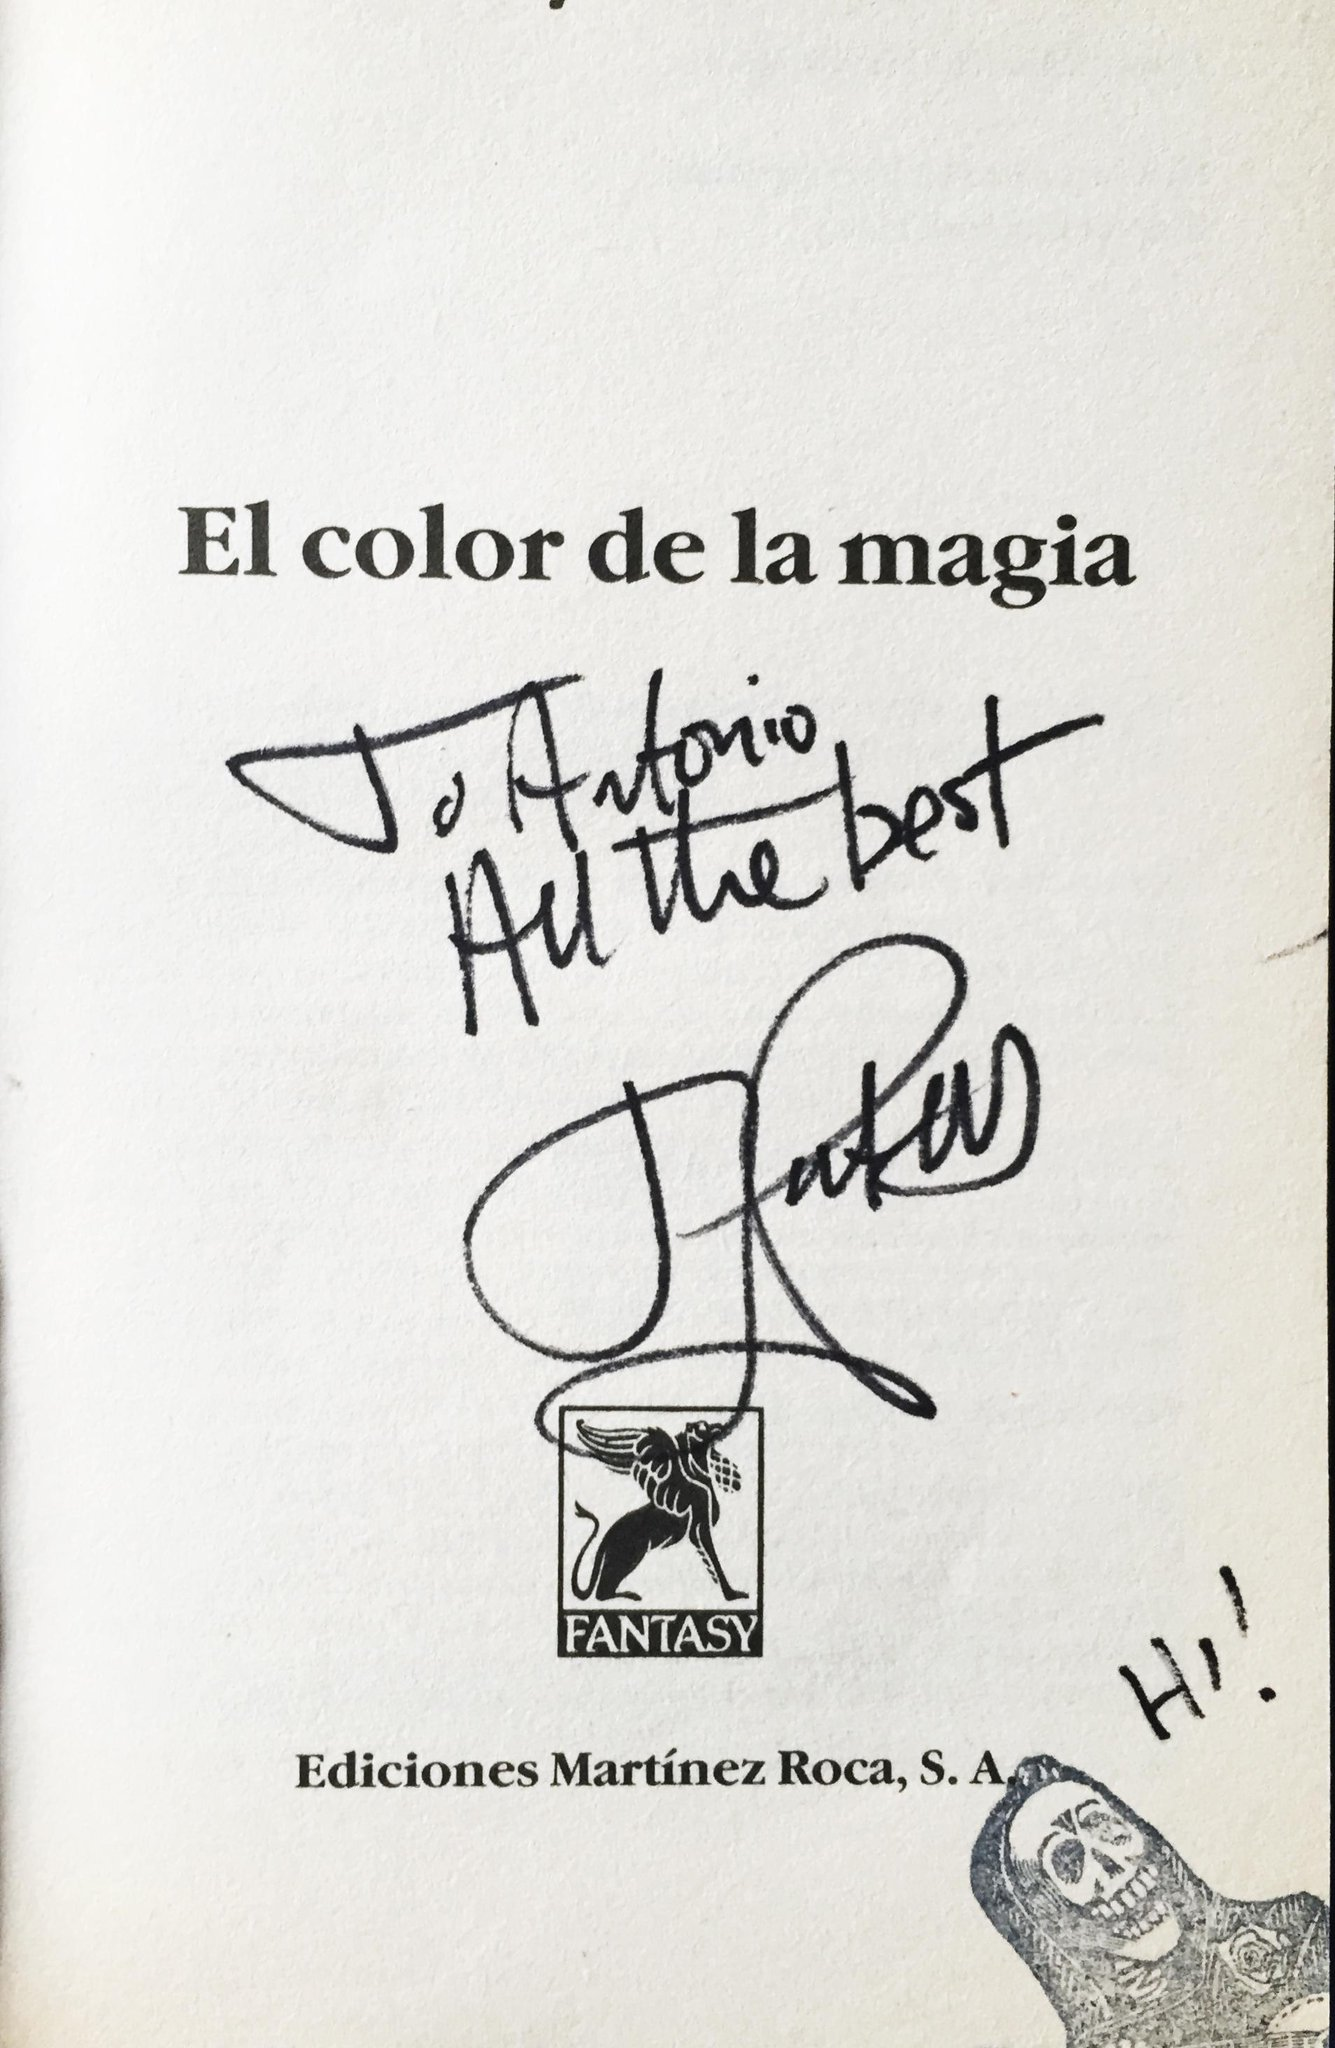 El Color de la Magia, dedicado